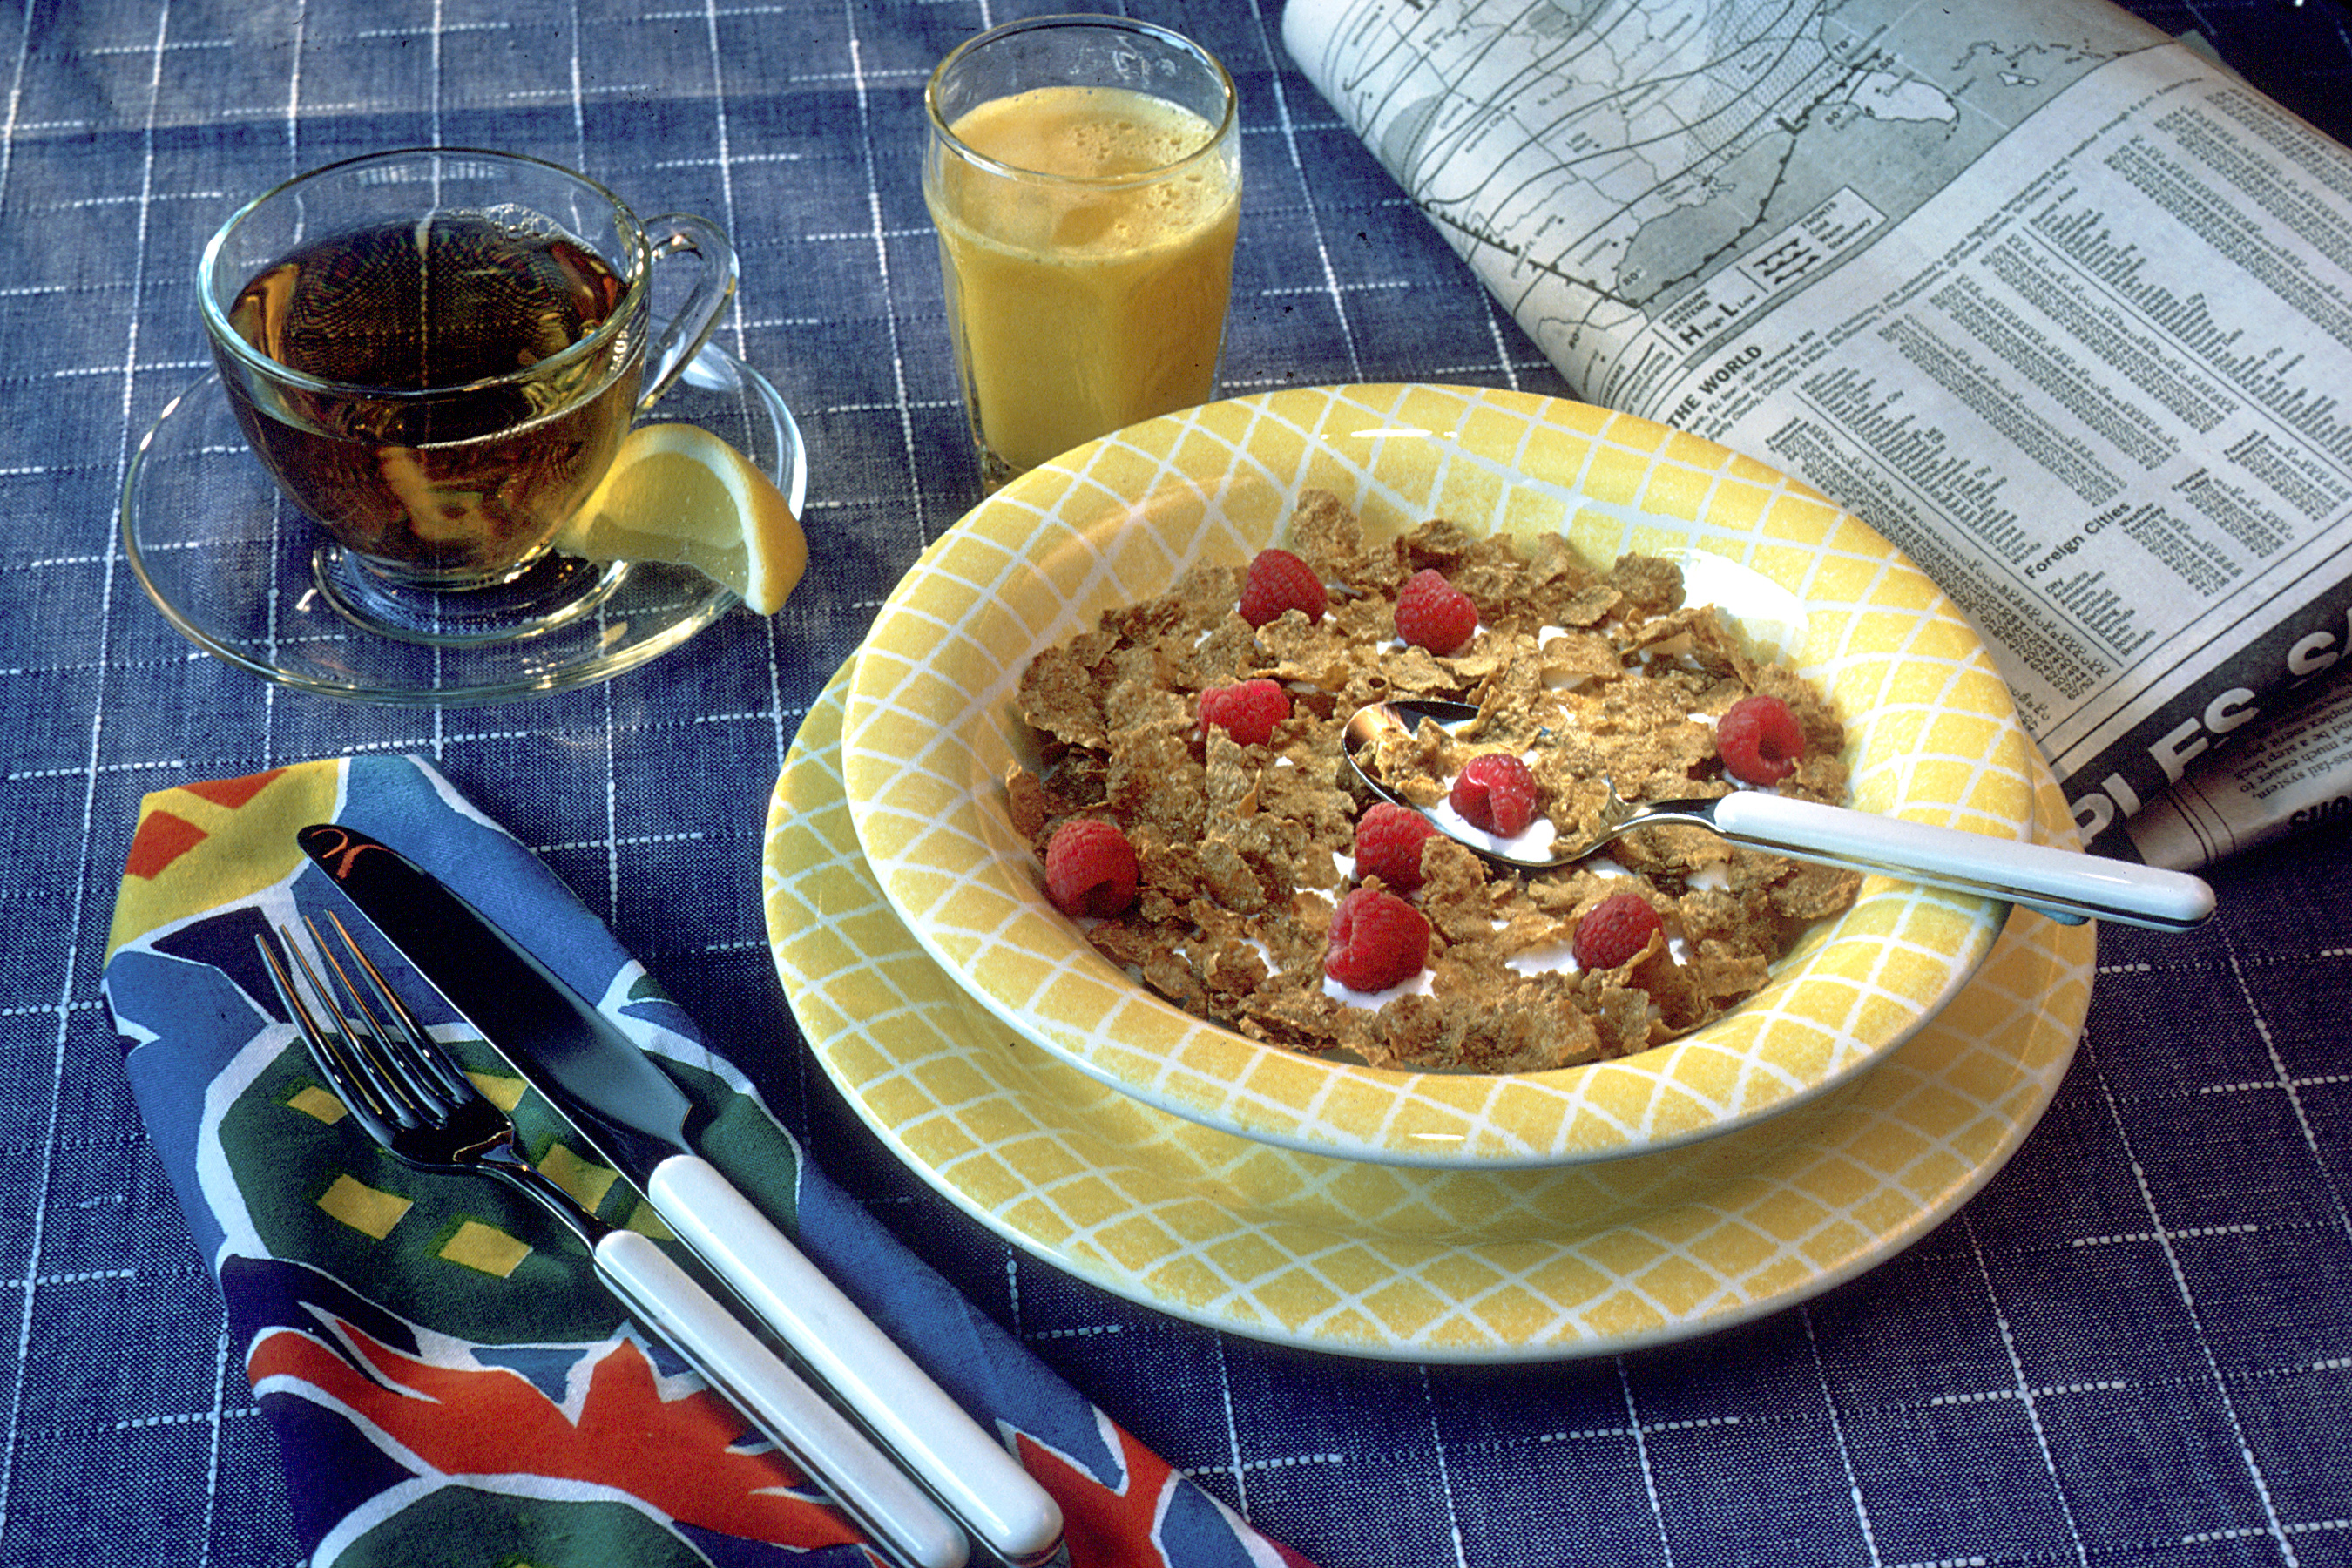 File:NCI Visuals Food Meal Breakfast.jpg  Wikipedia, the free